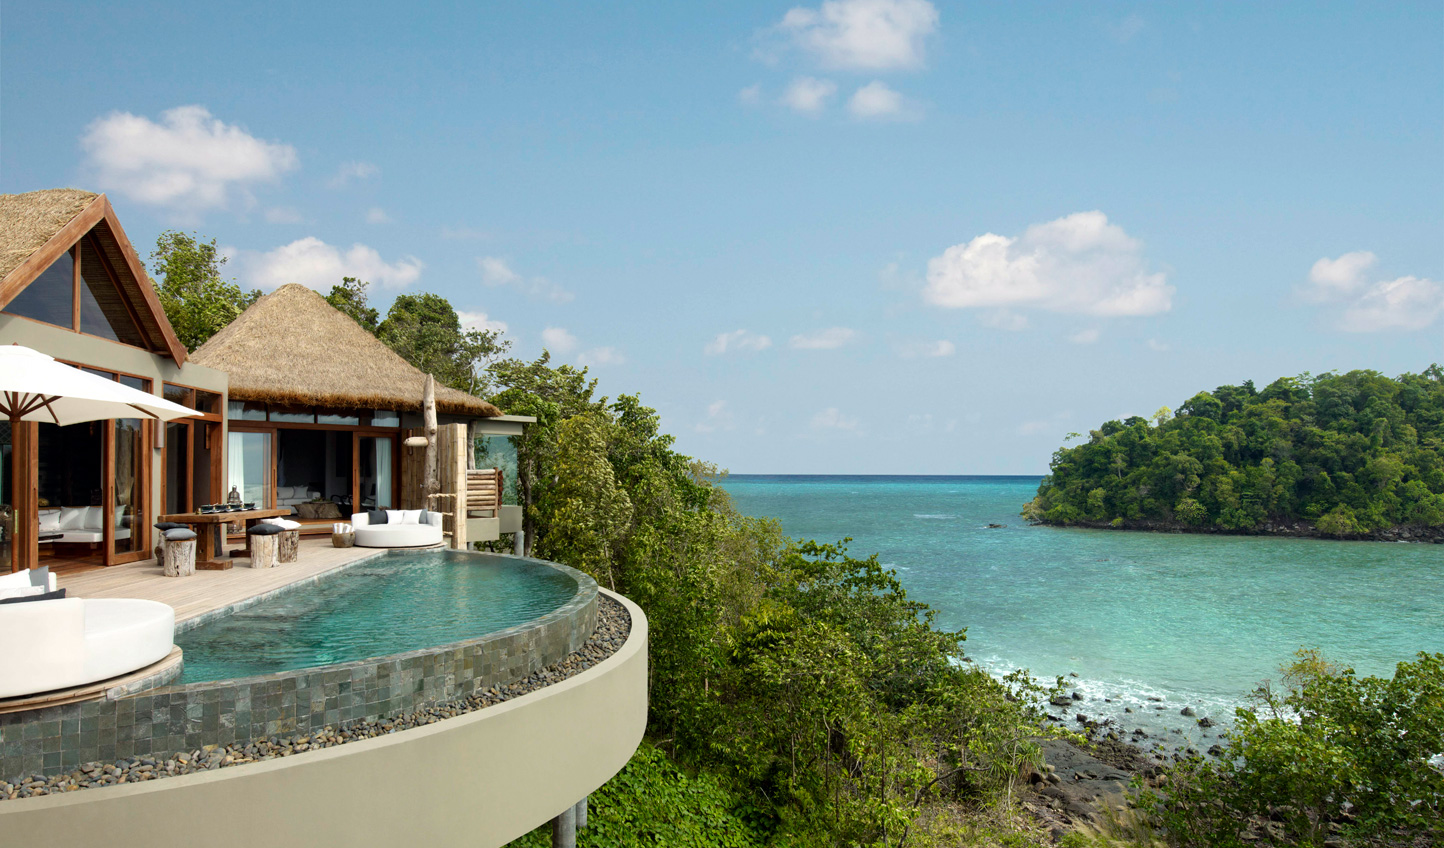 A bolthole so private, you'll feel as if the island is entirely your own